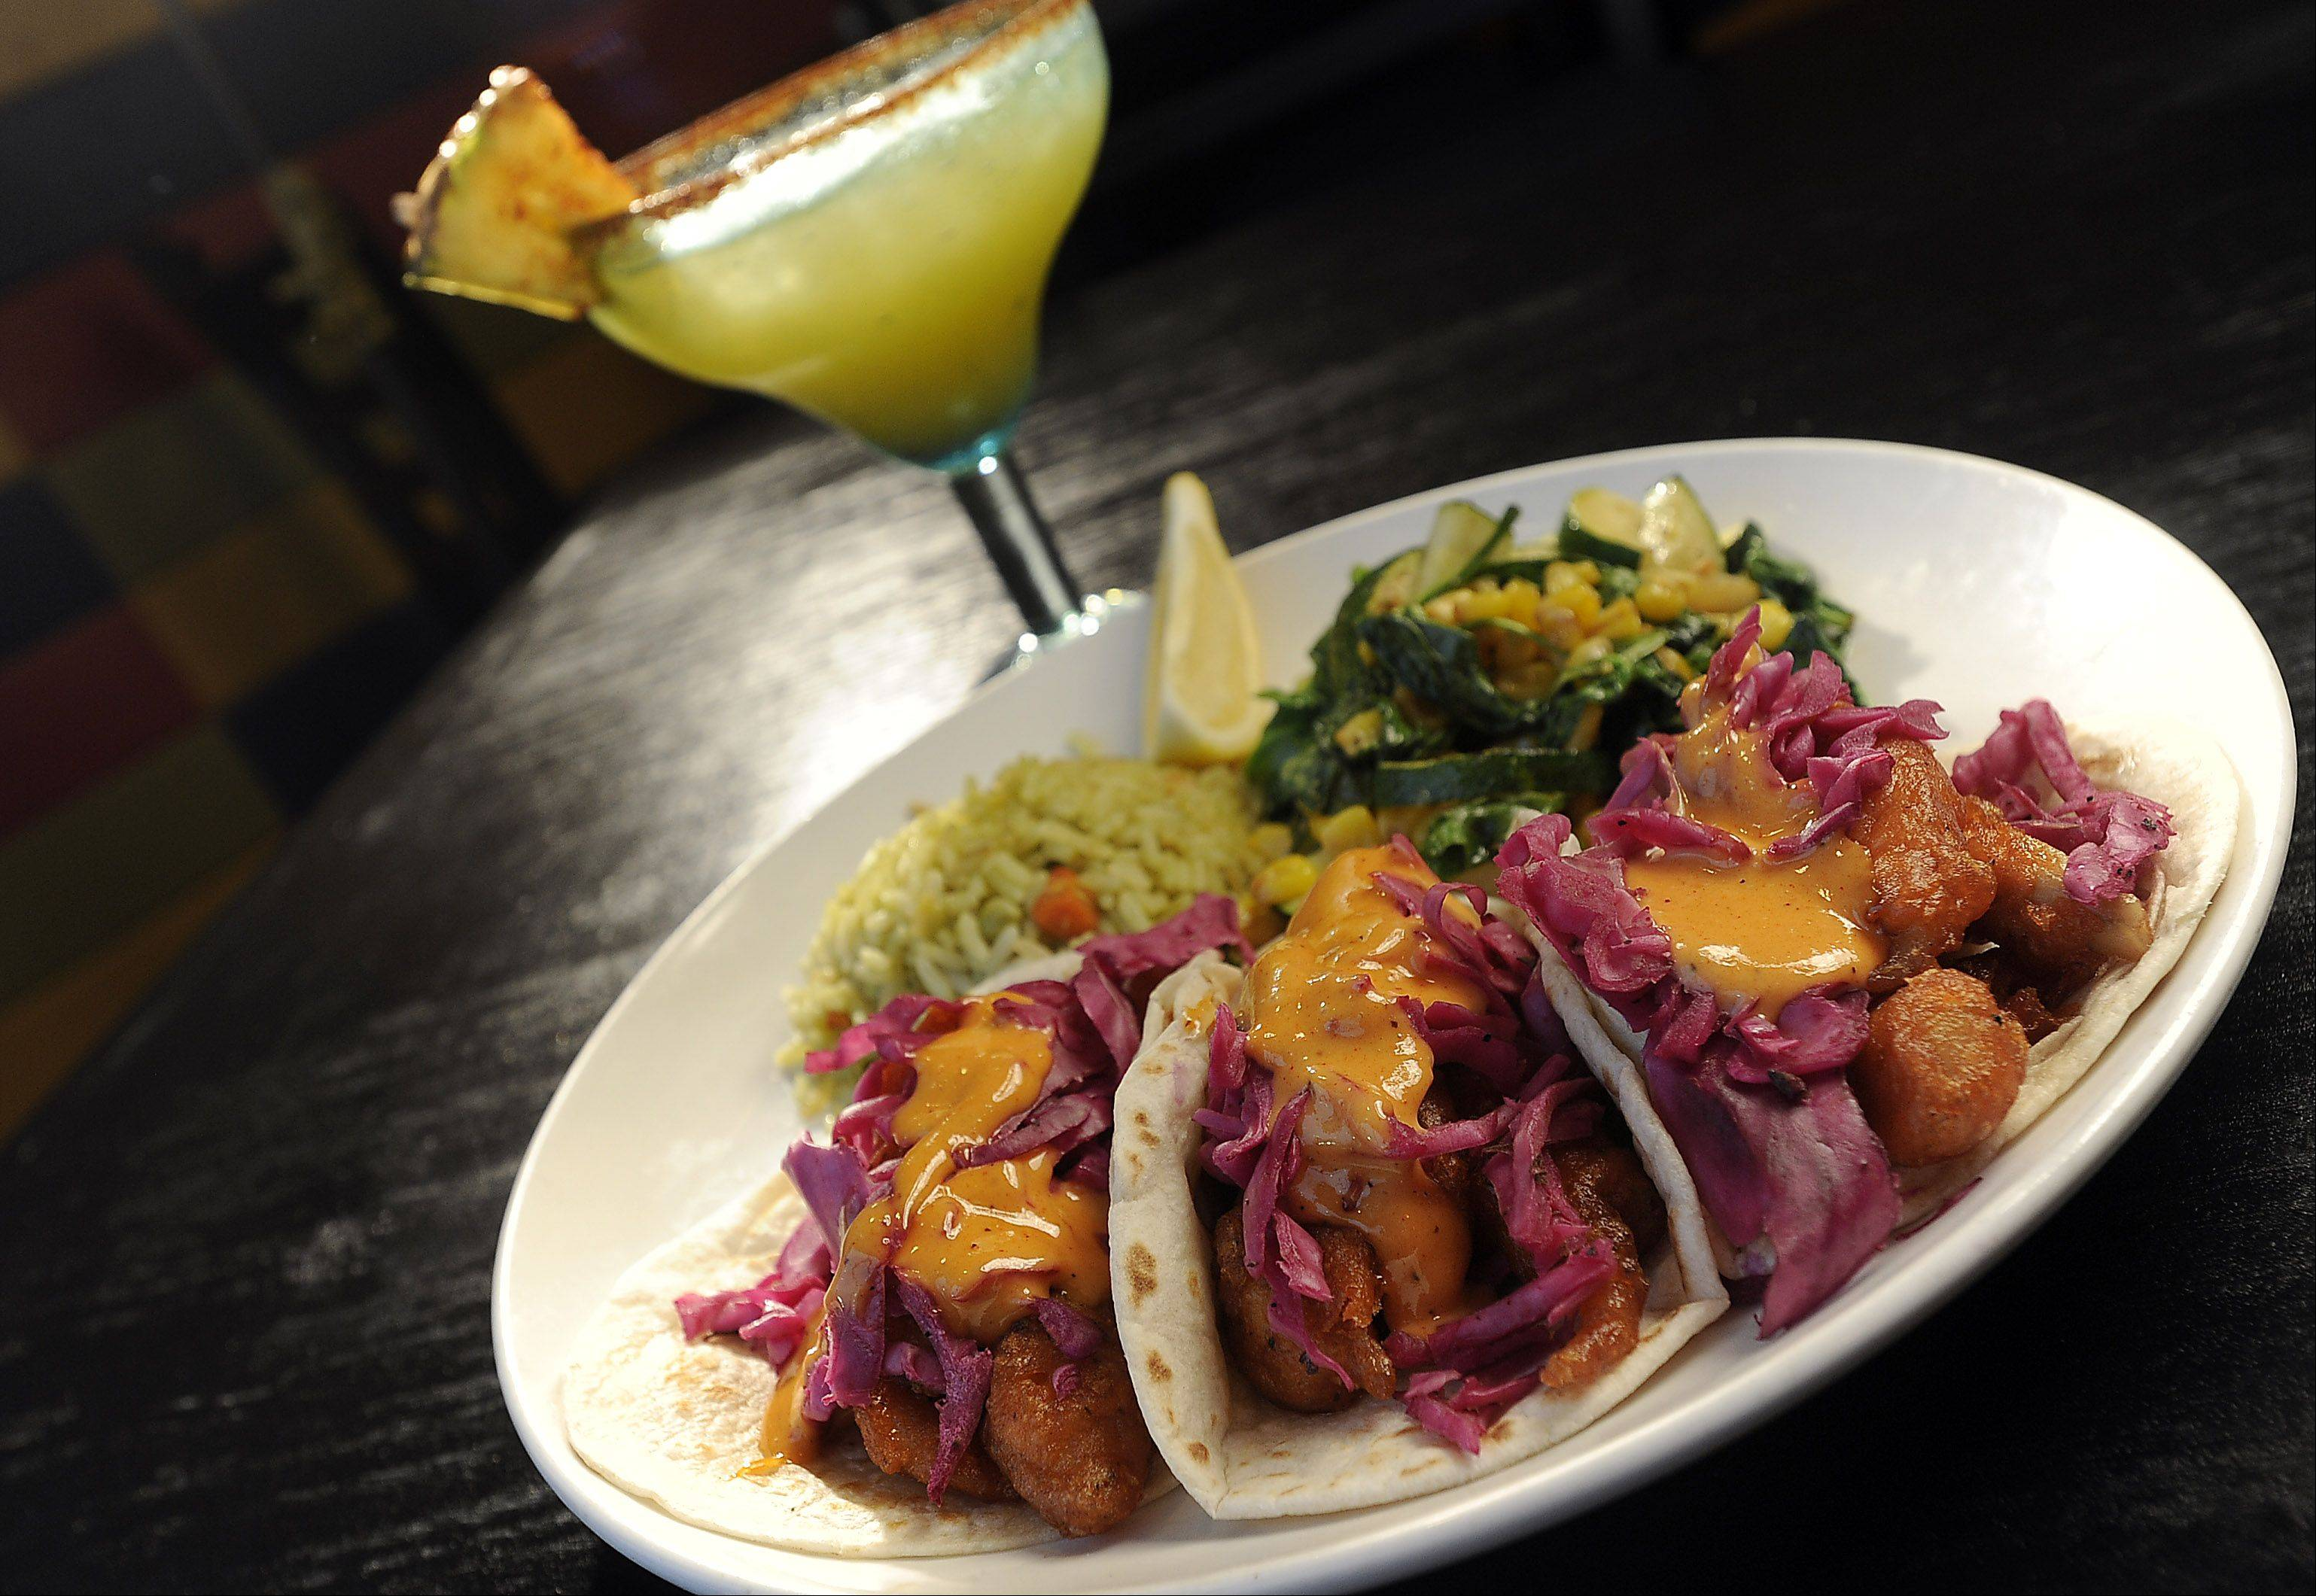 Beer-battered tacos are served with a chipotle-spiked cream sauce at Mia's Cantina in Mount Prospect.